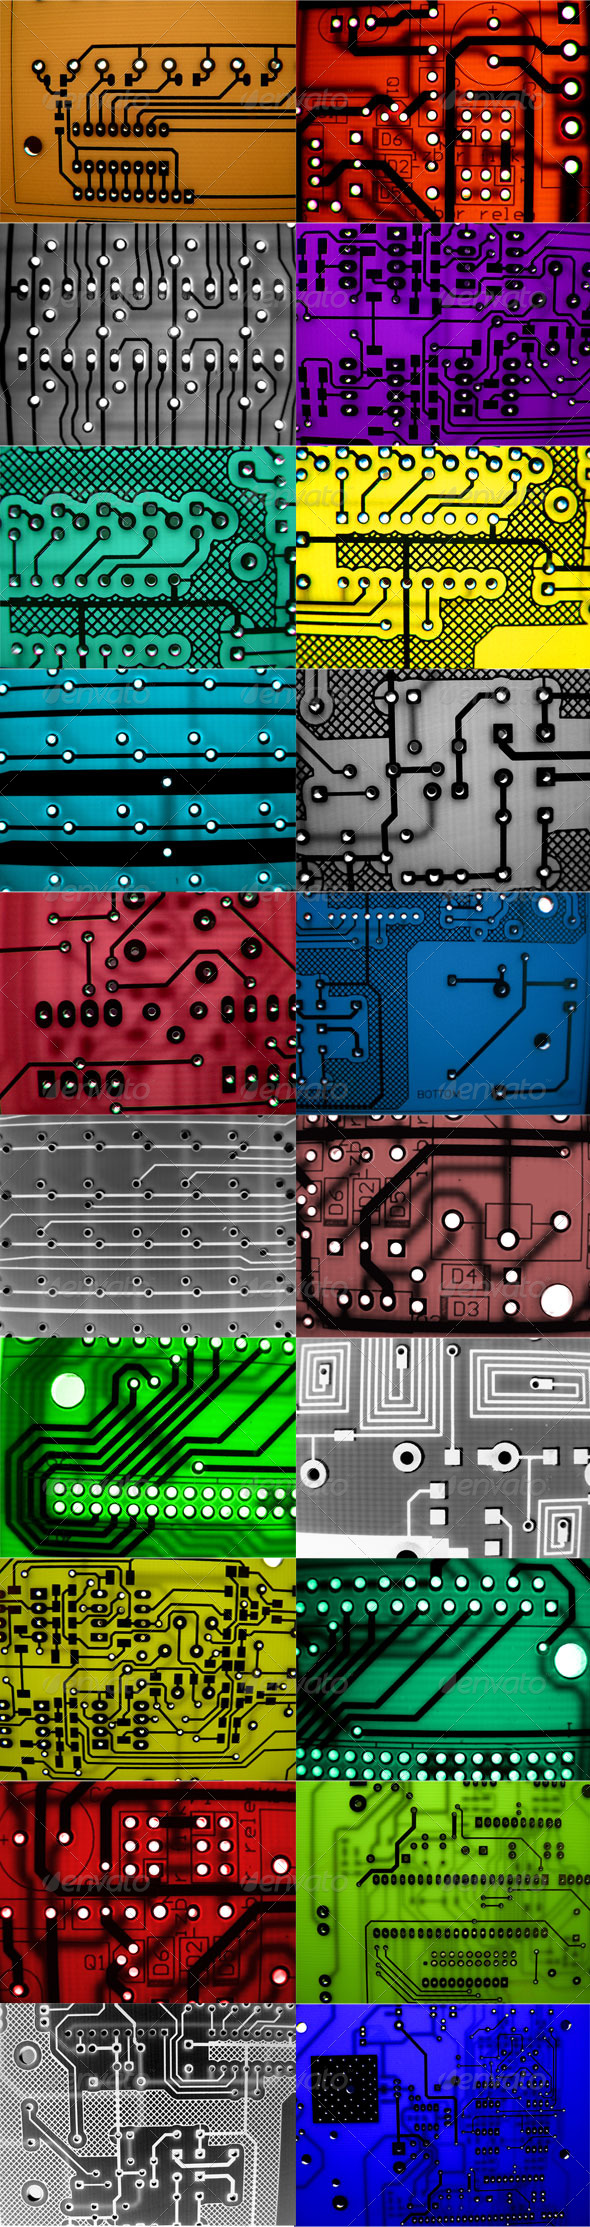 20 electronic circuit board backgrounds. Suitable for design backgrounds,